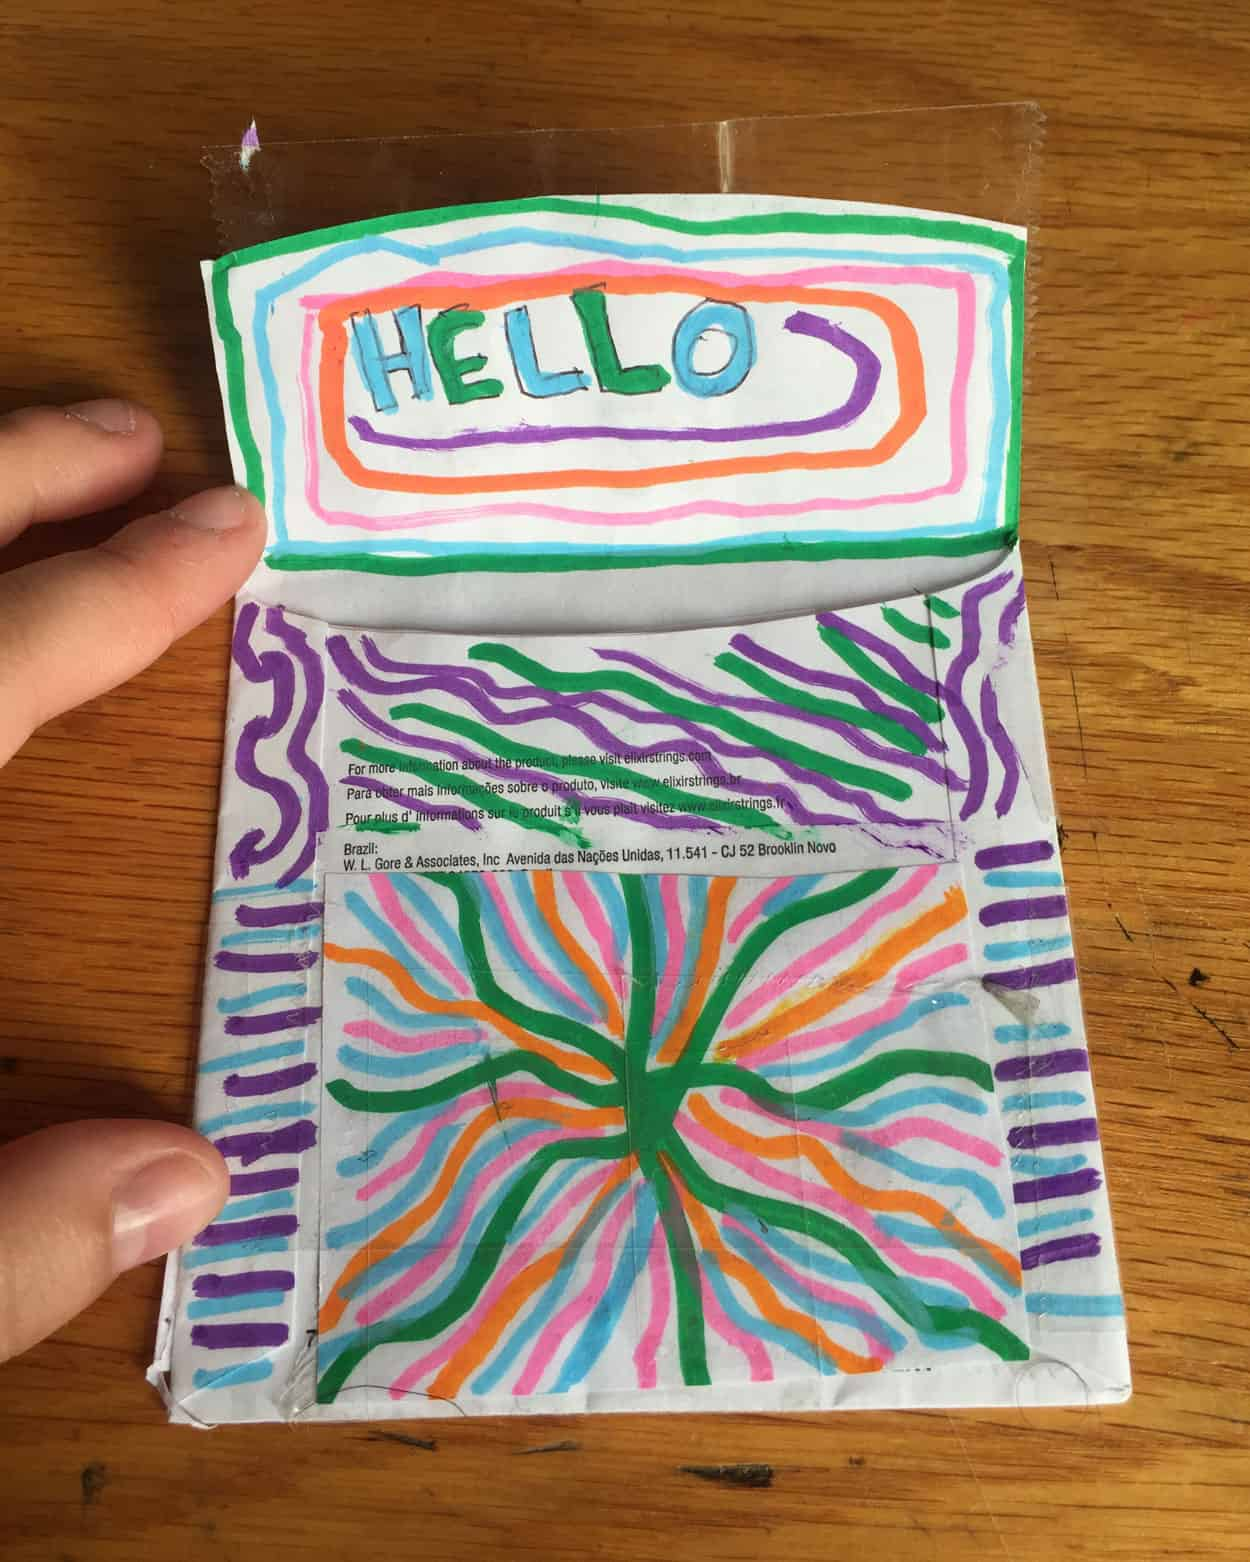 A back of an envelope with the word hello written on the underside of the flap, decorated with green, blue, pink, Orange and purple lines. The Rest of the enveloppe is also decorated in these same colored lines.